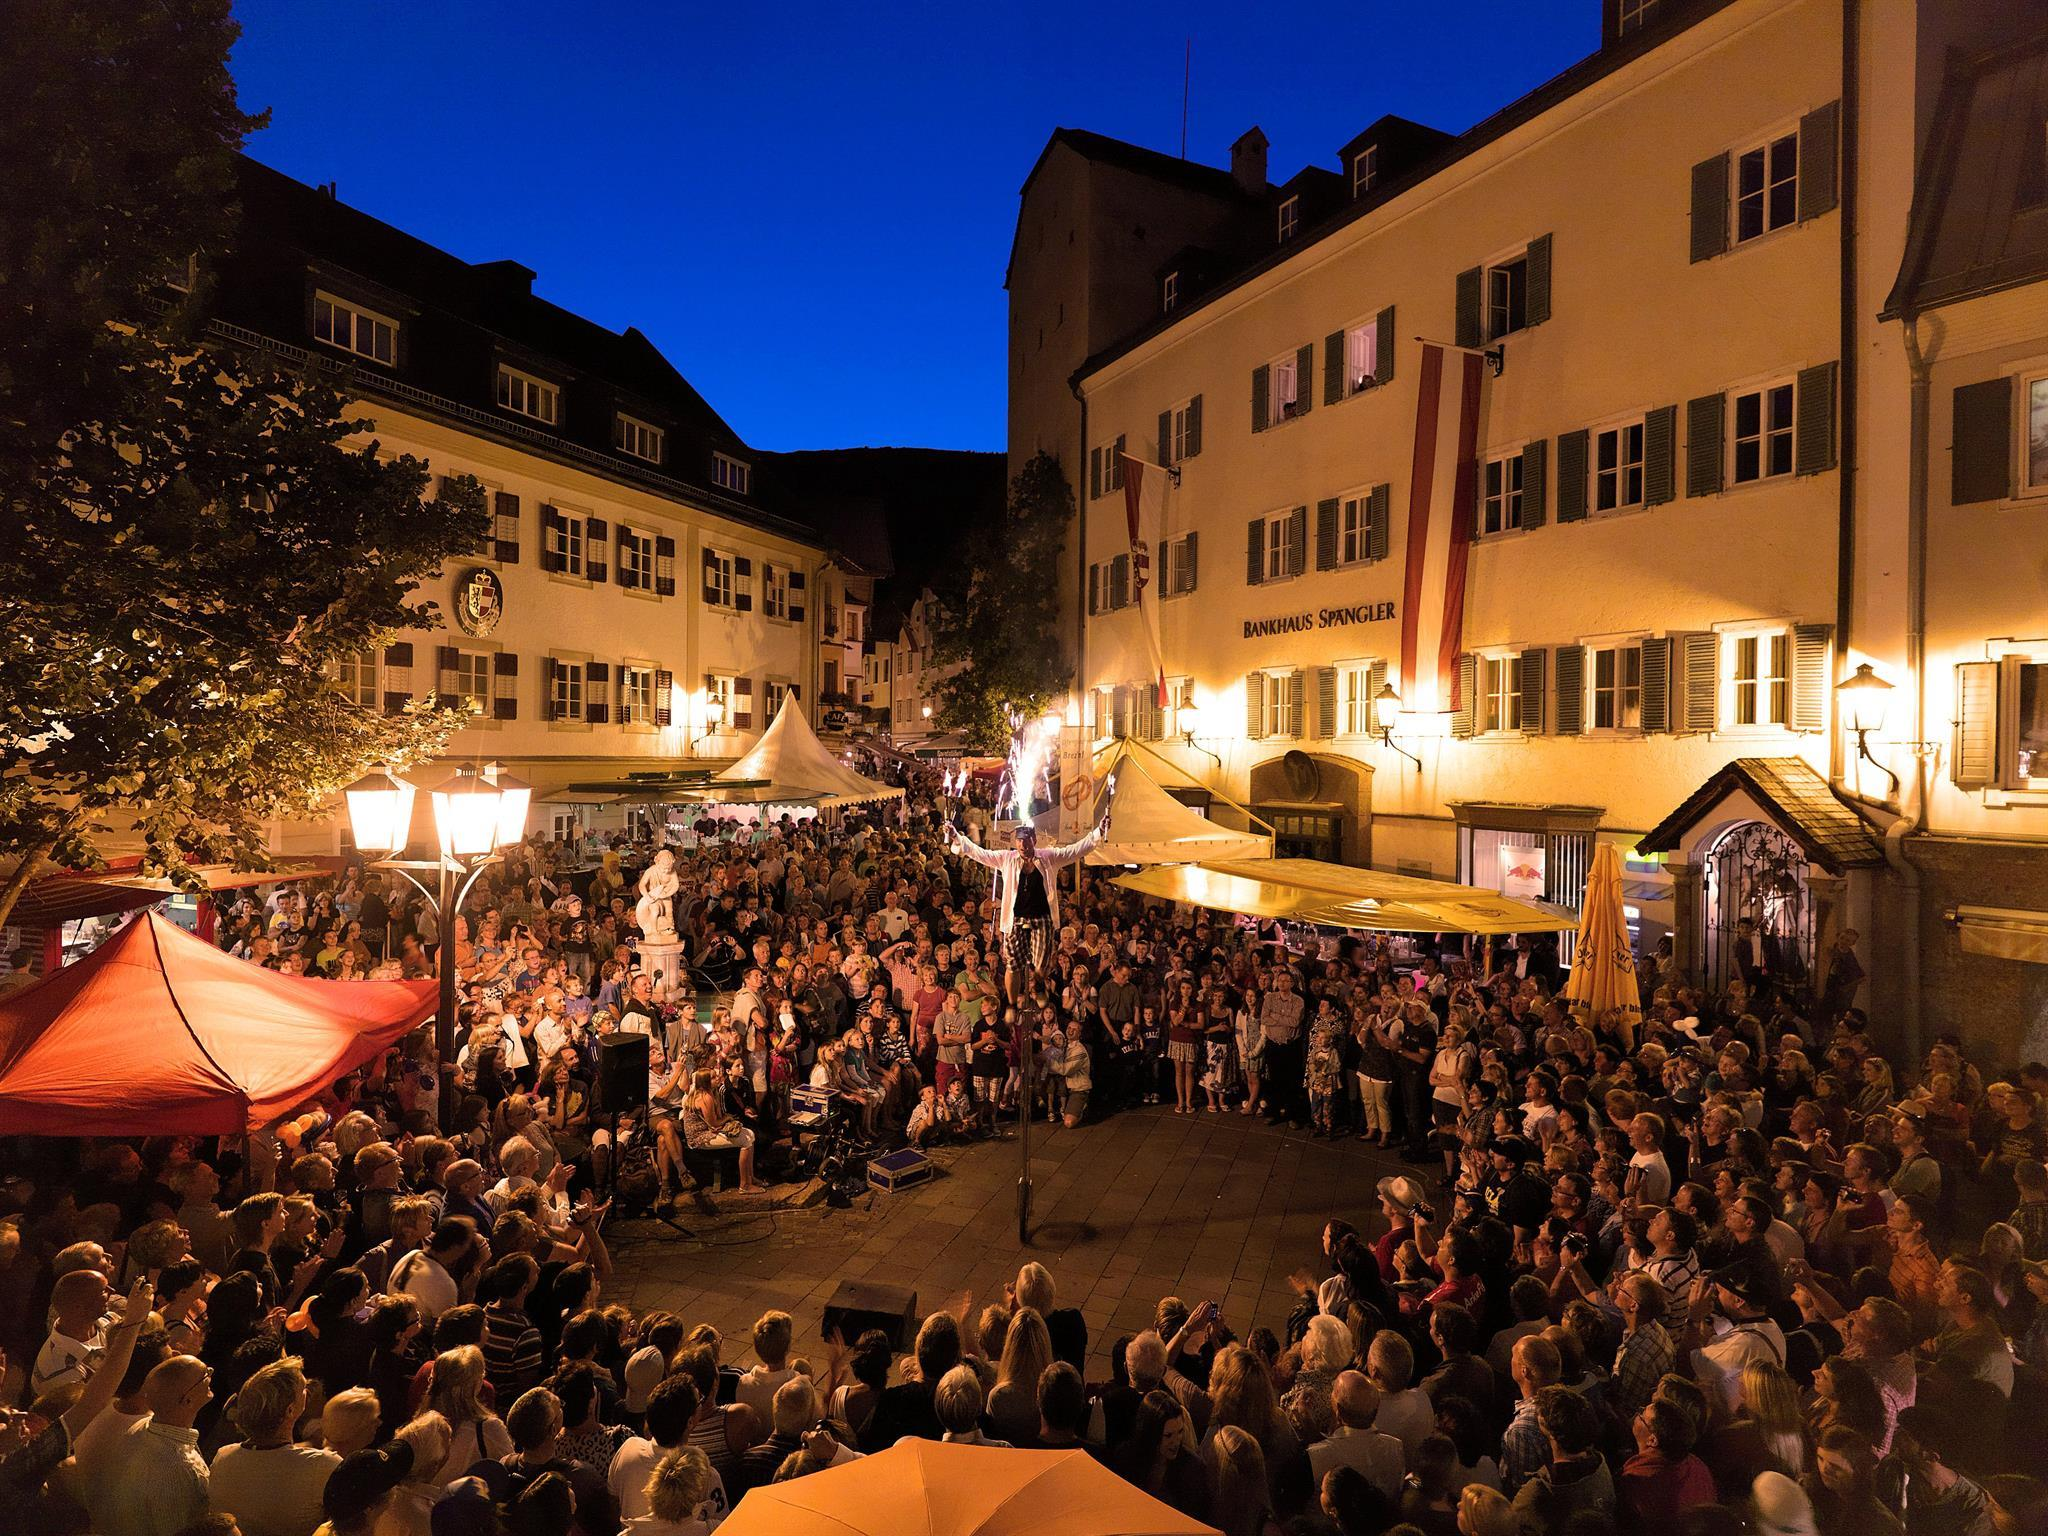 Zell SummerNightFestival - 19/08/2020, from 7:00 PM